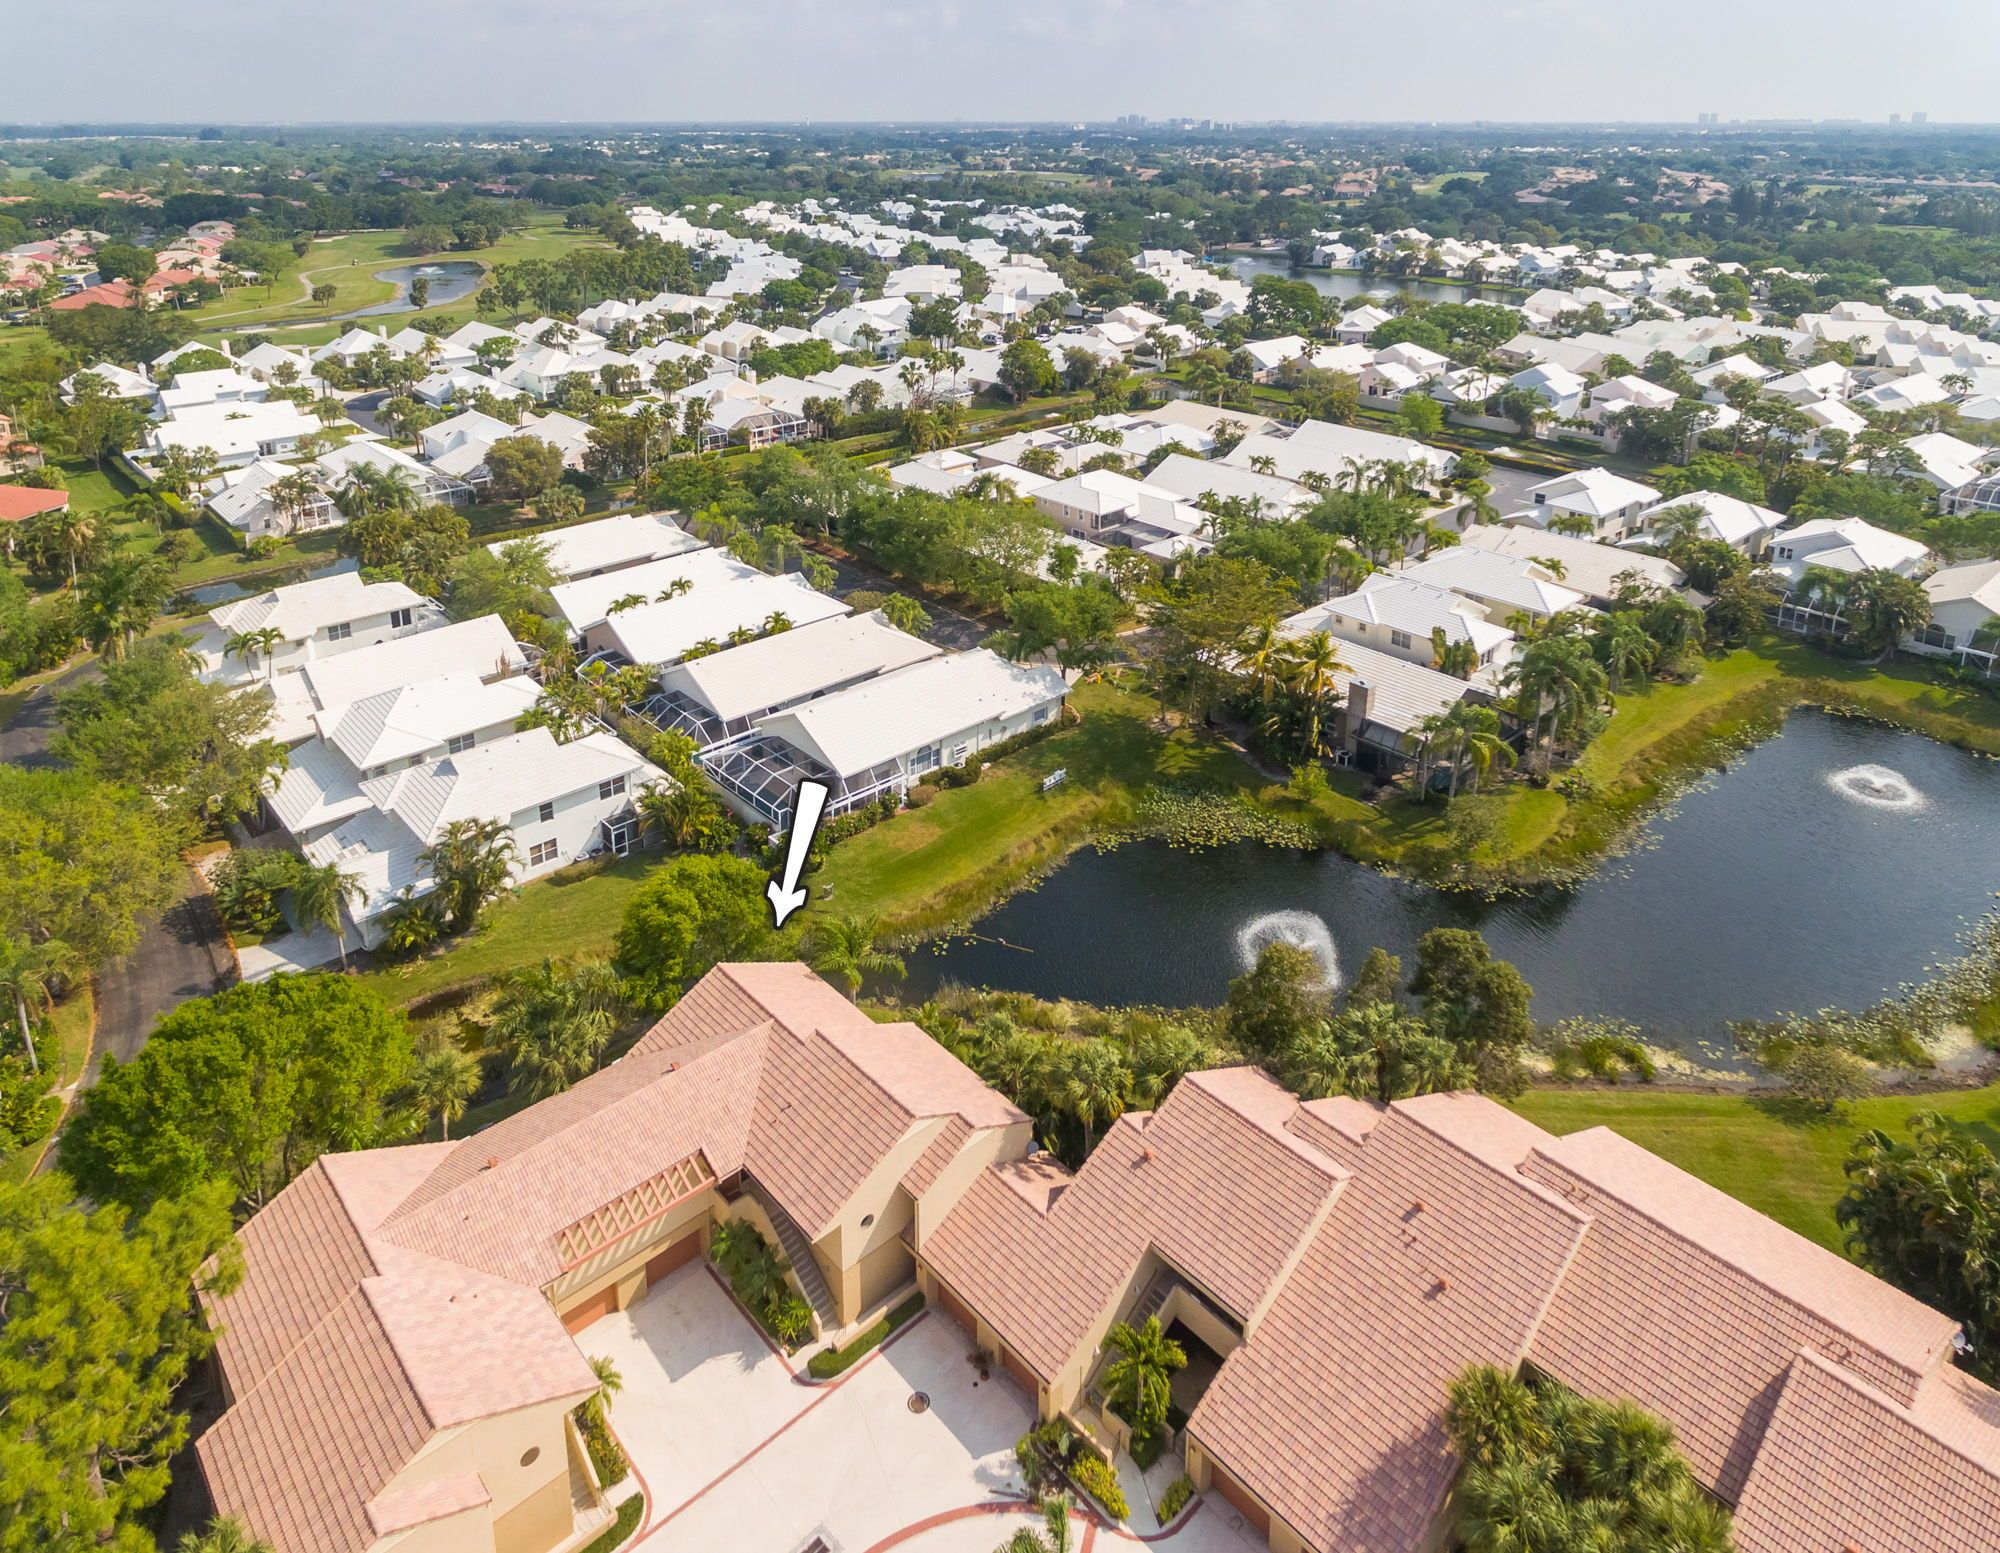 8dac14c4e286ee3661f4b778d9ebdee0 - The Meadows Florida Palm Beach Gardens